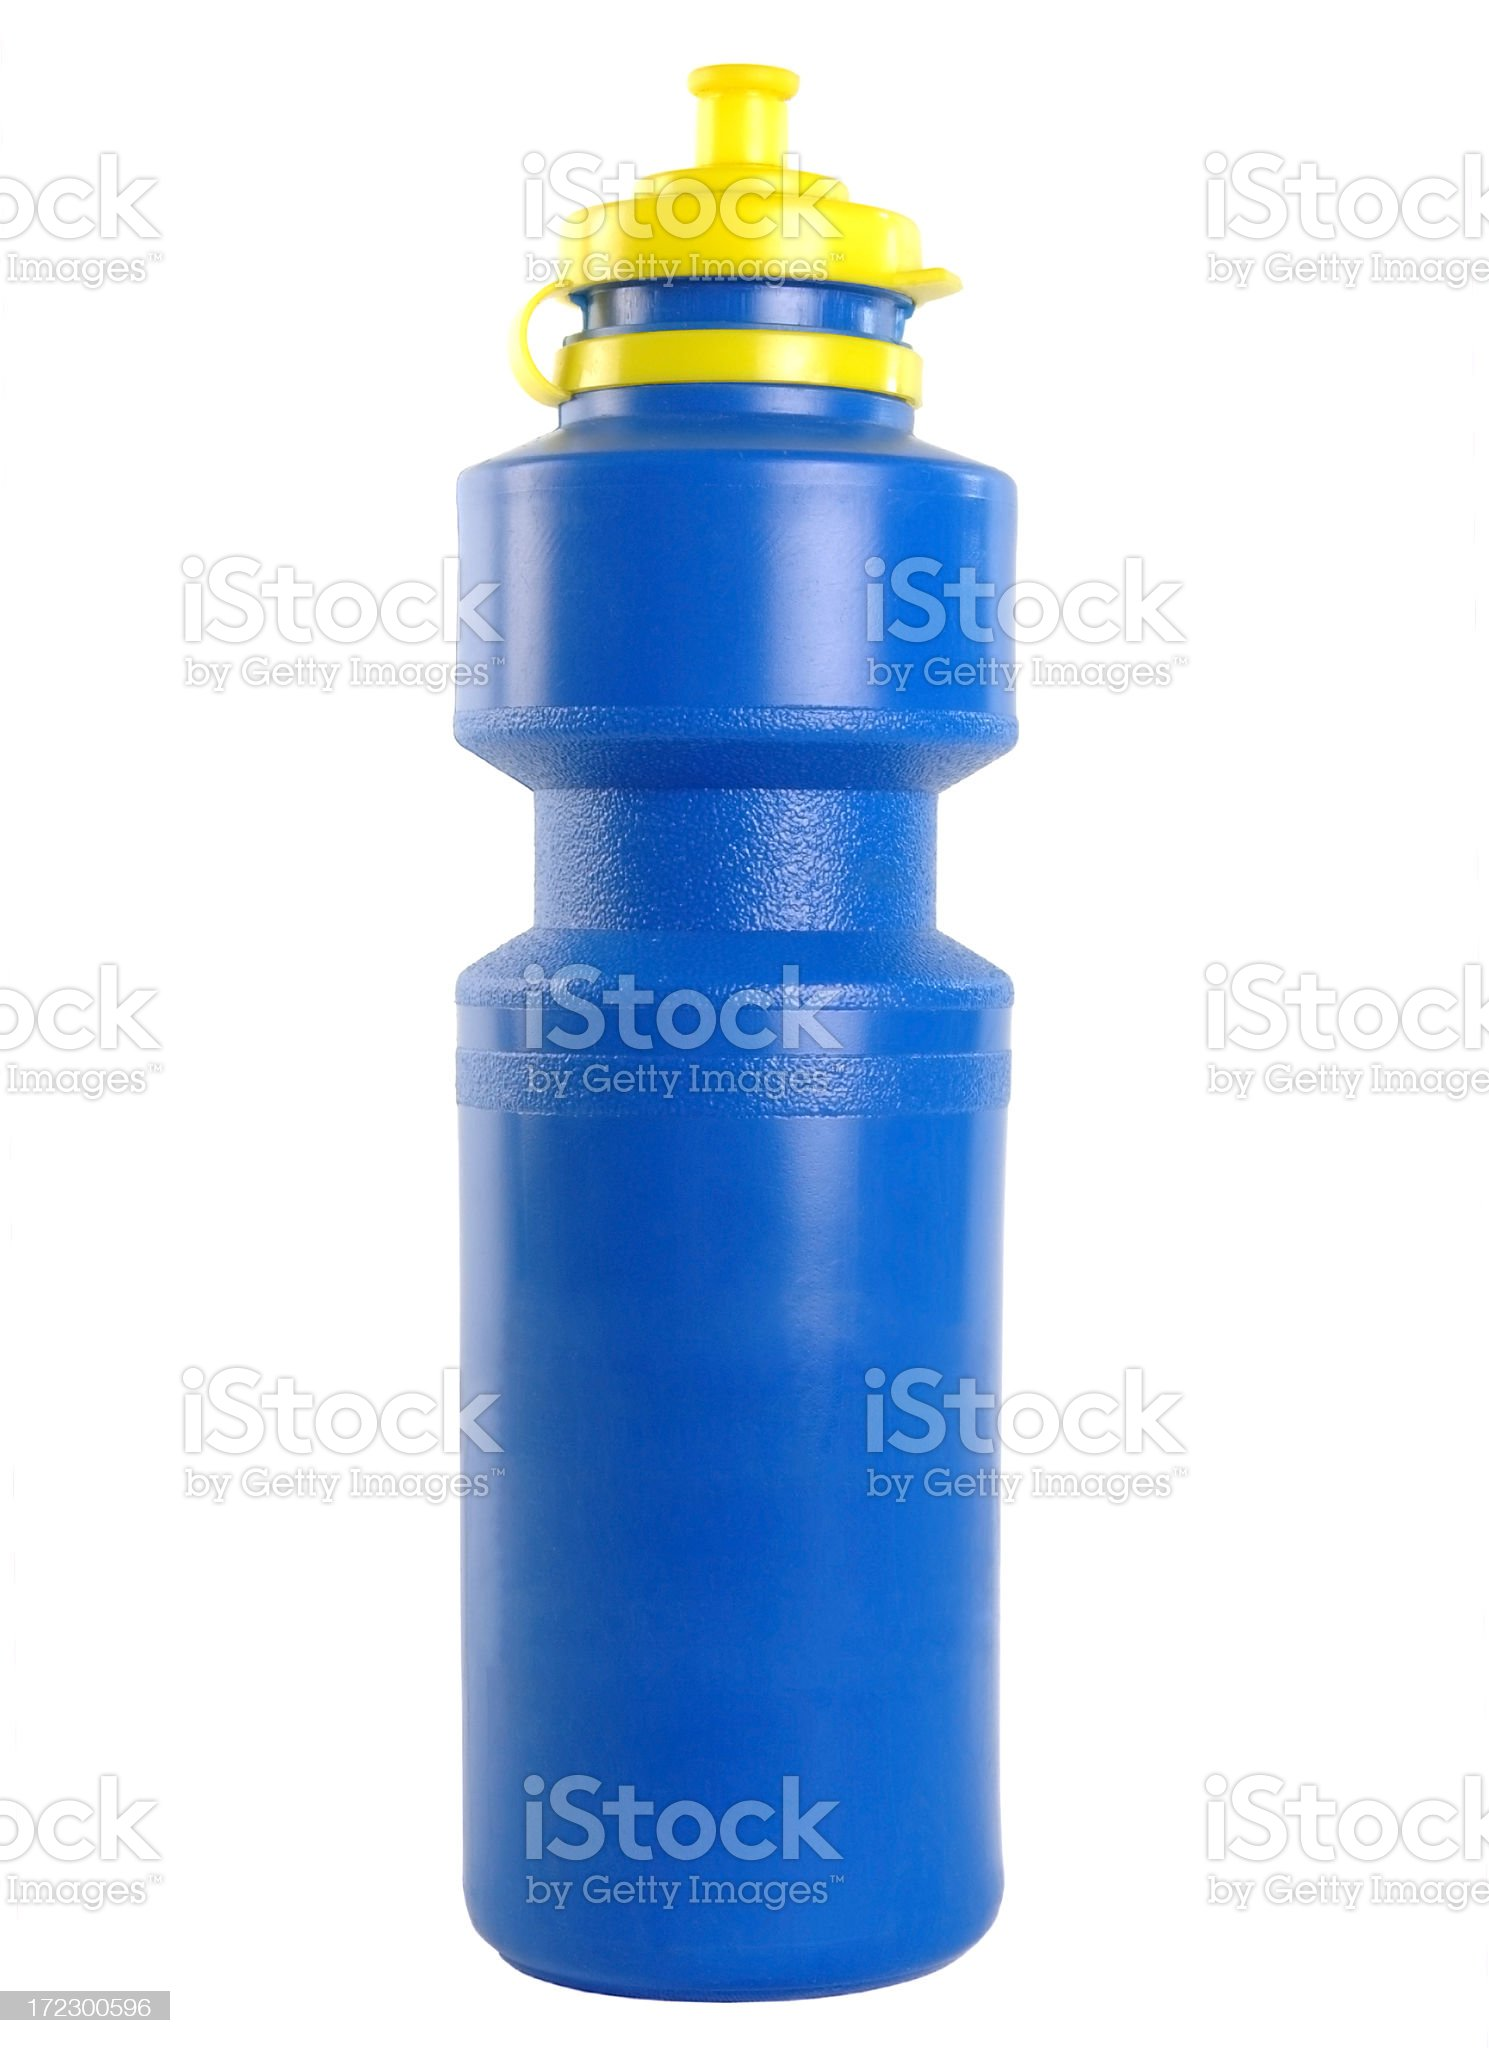 Blue plastic water bottle with a yellow cap royalty-free stock photo